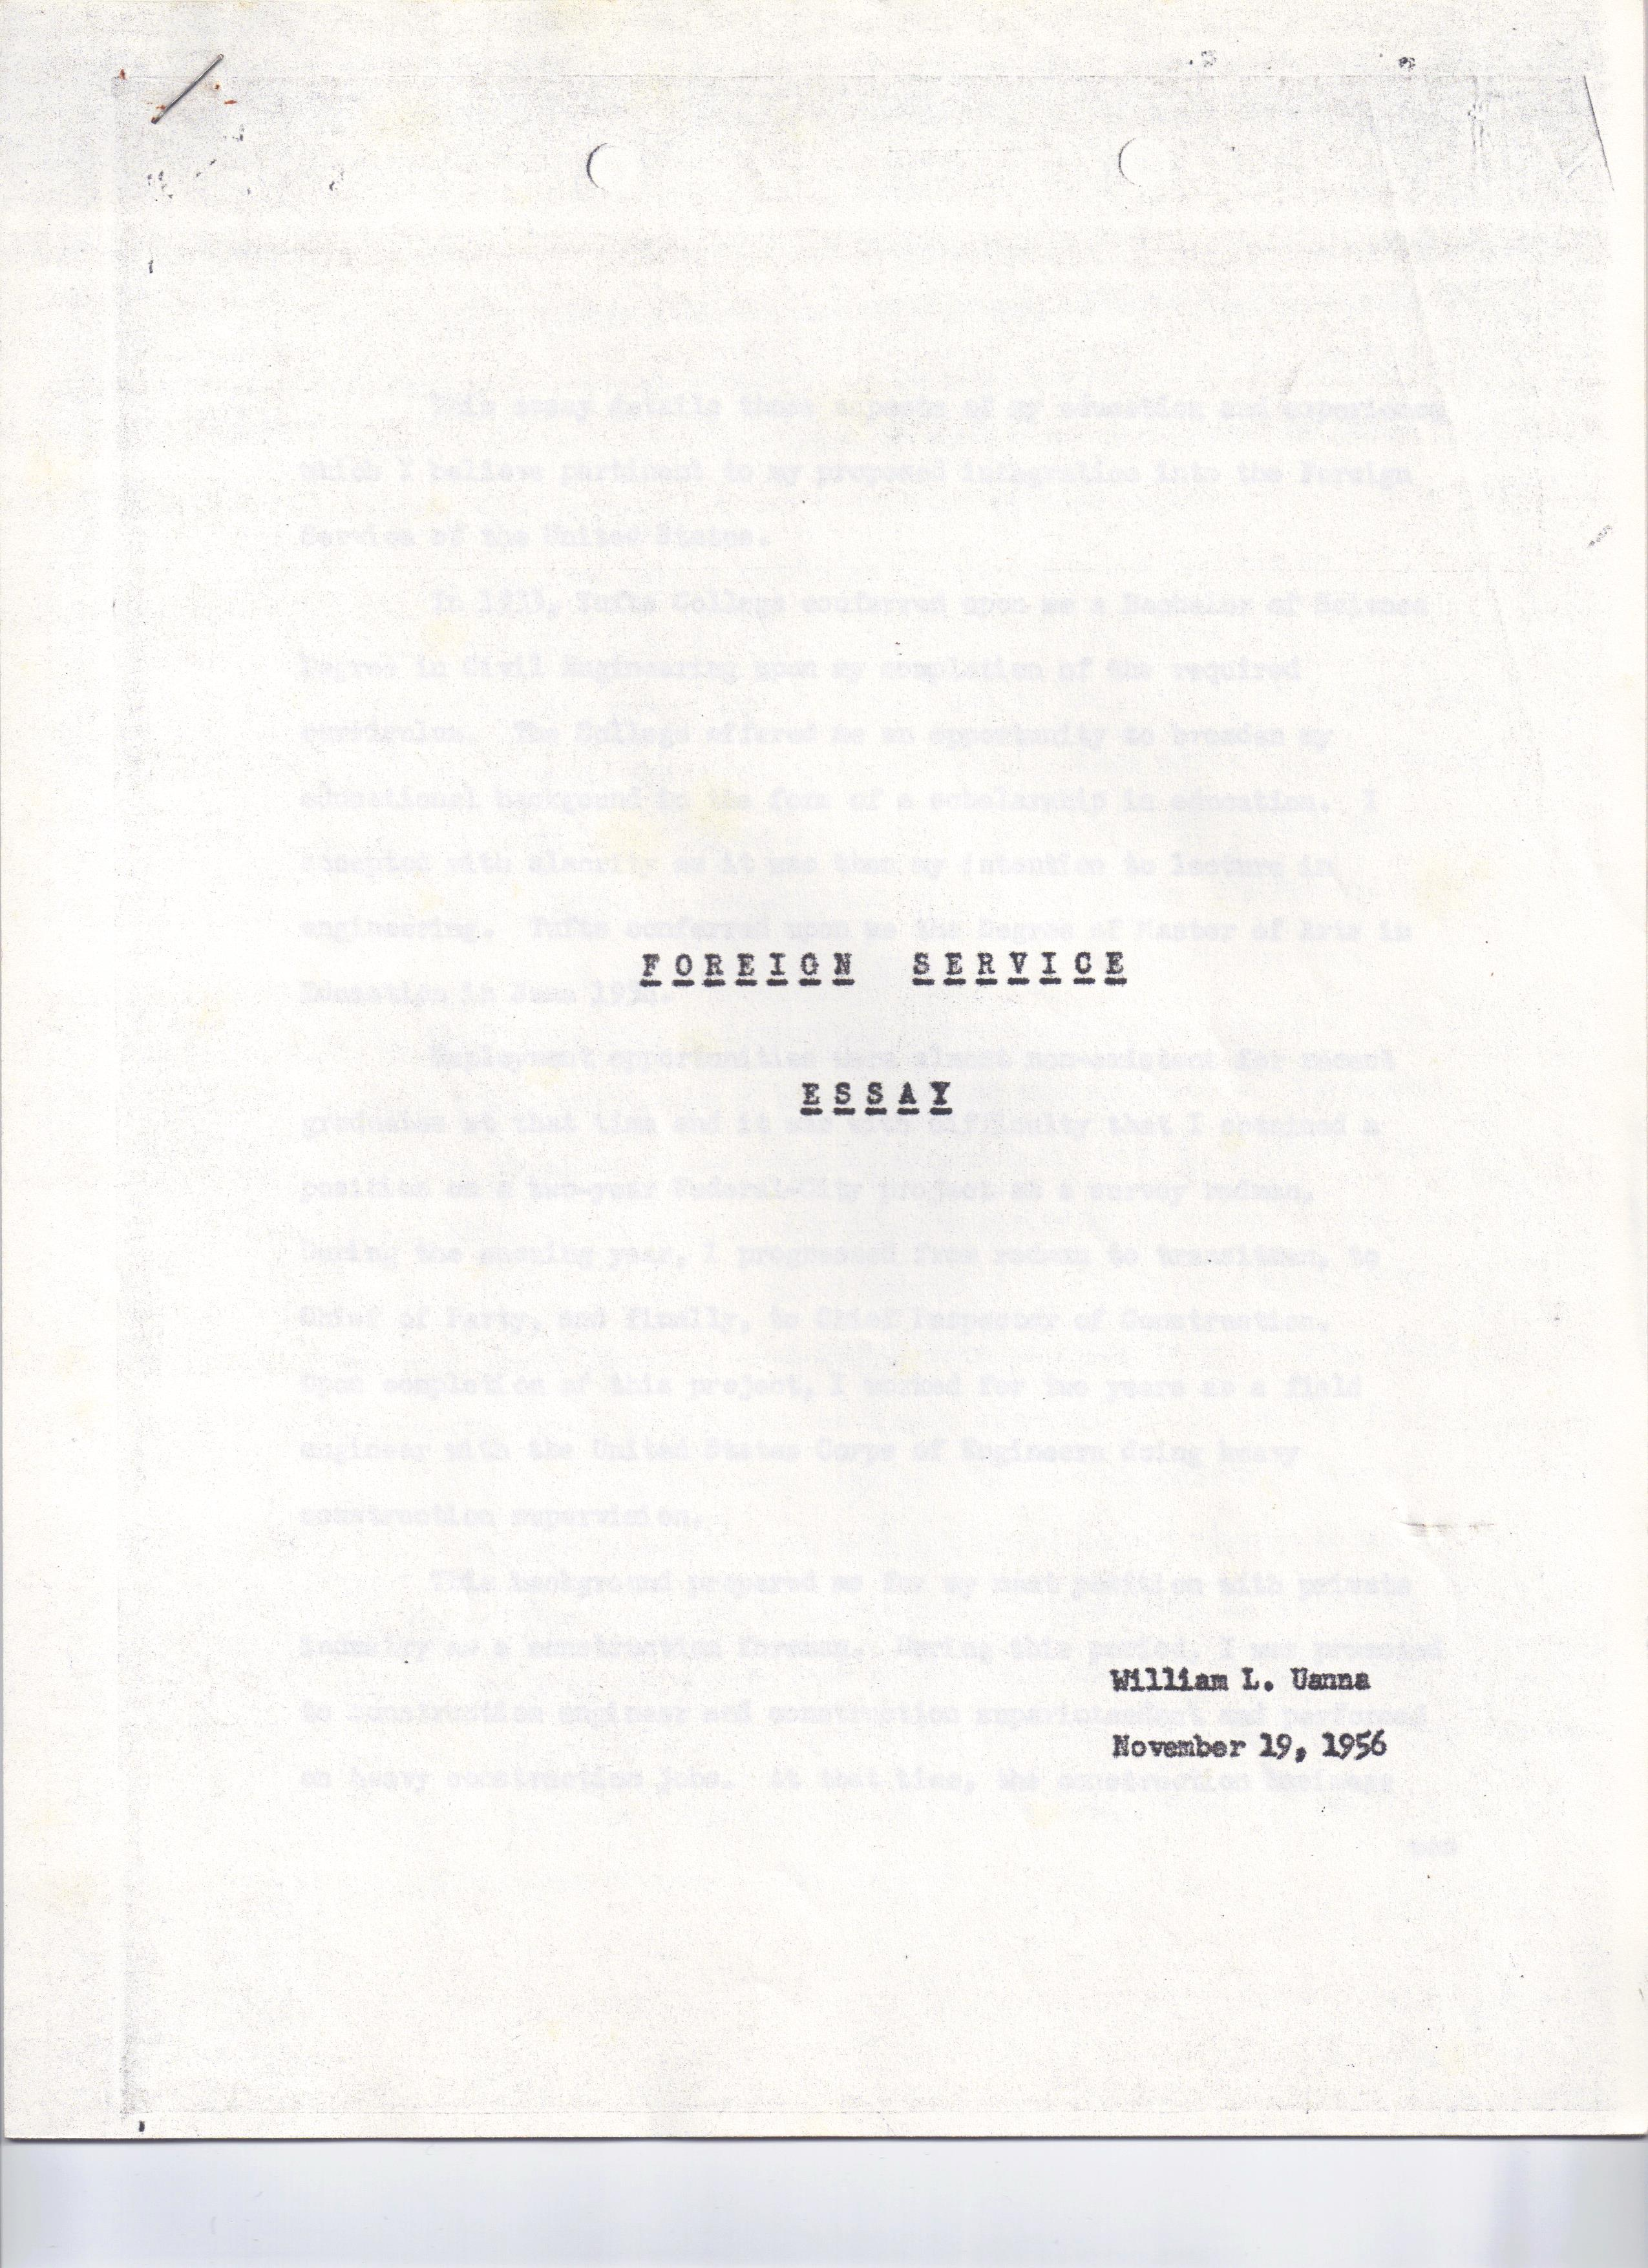 005 Essay Example Cover Letter For Bud Uanna Foreign Service November 19 1956 Singular Competition Scientific Paper Submission College Full